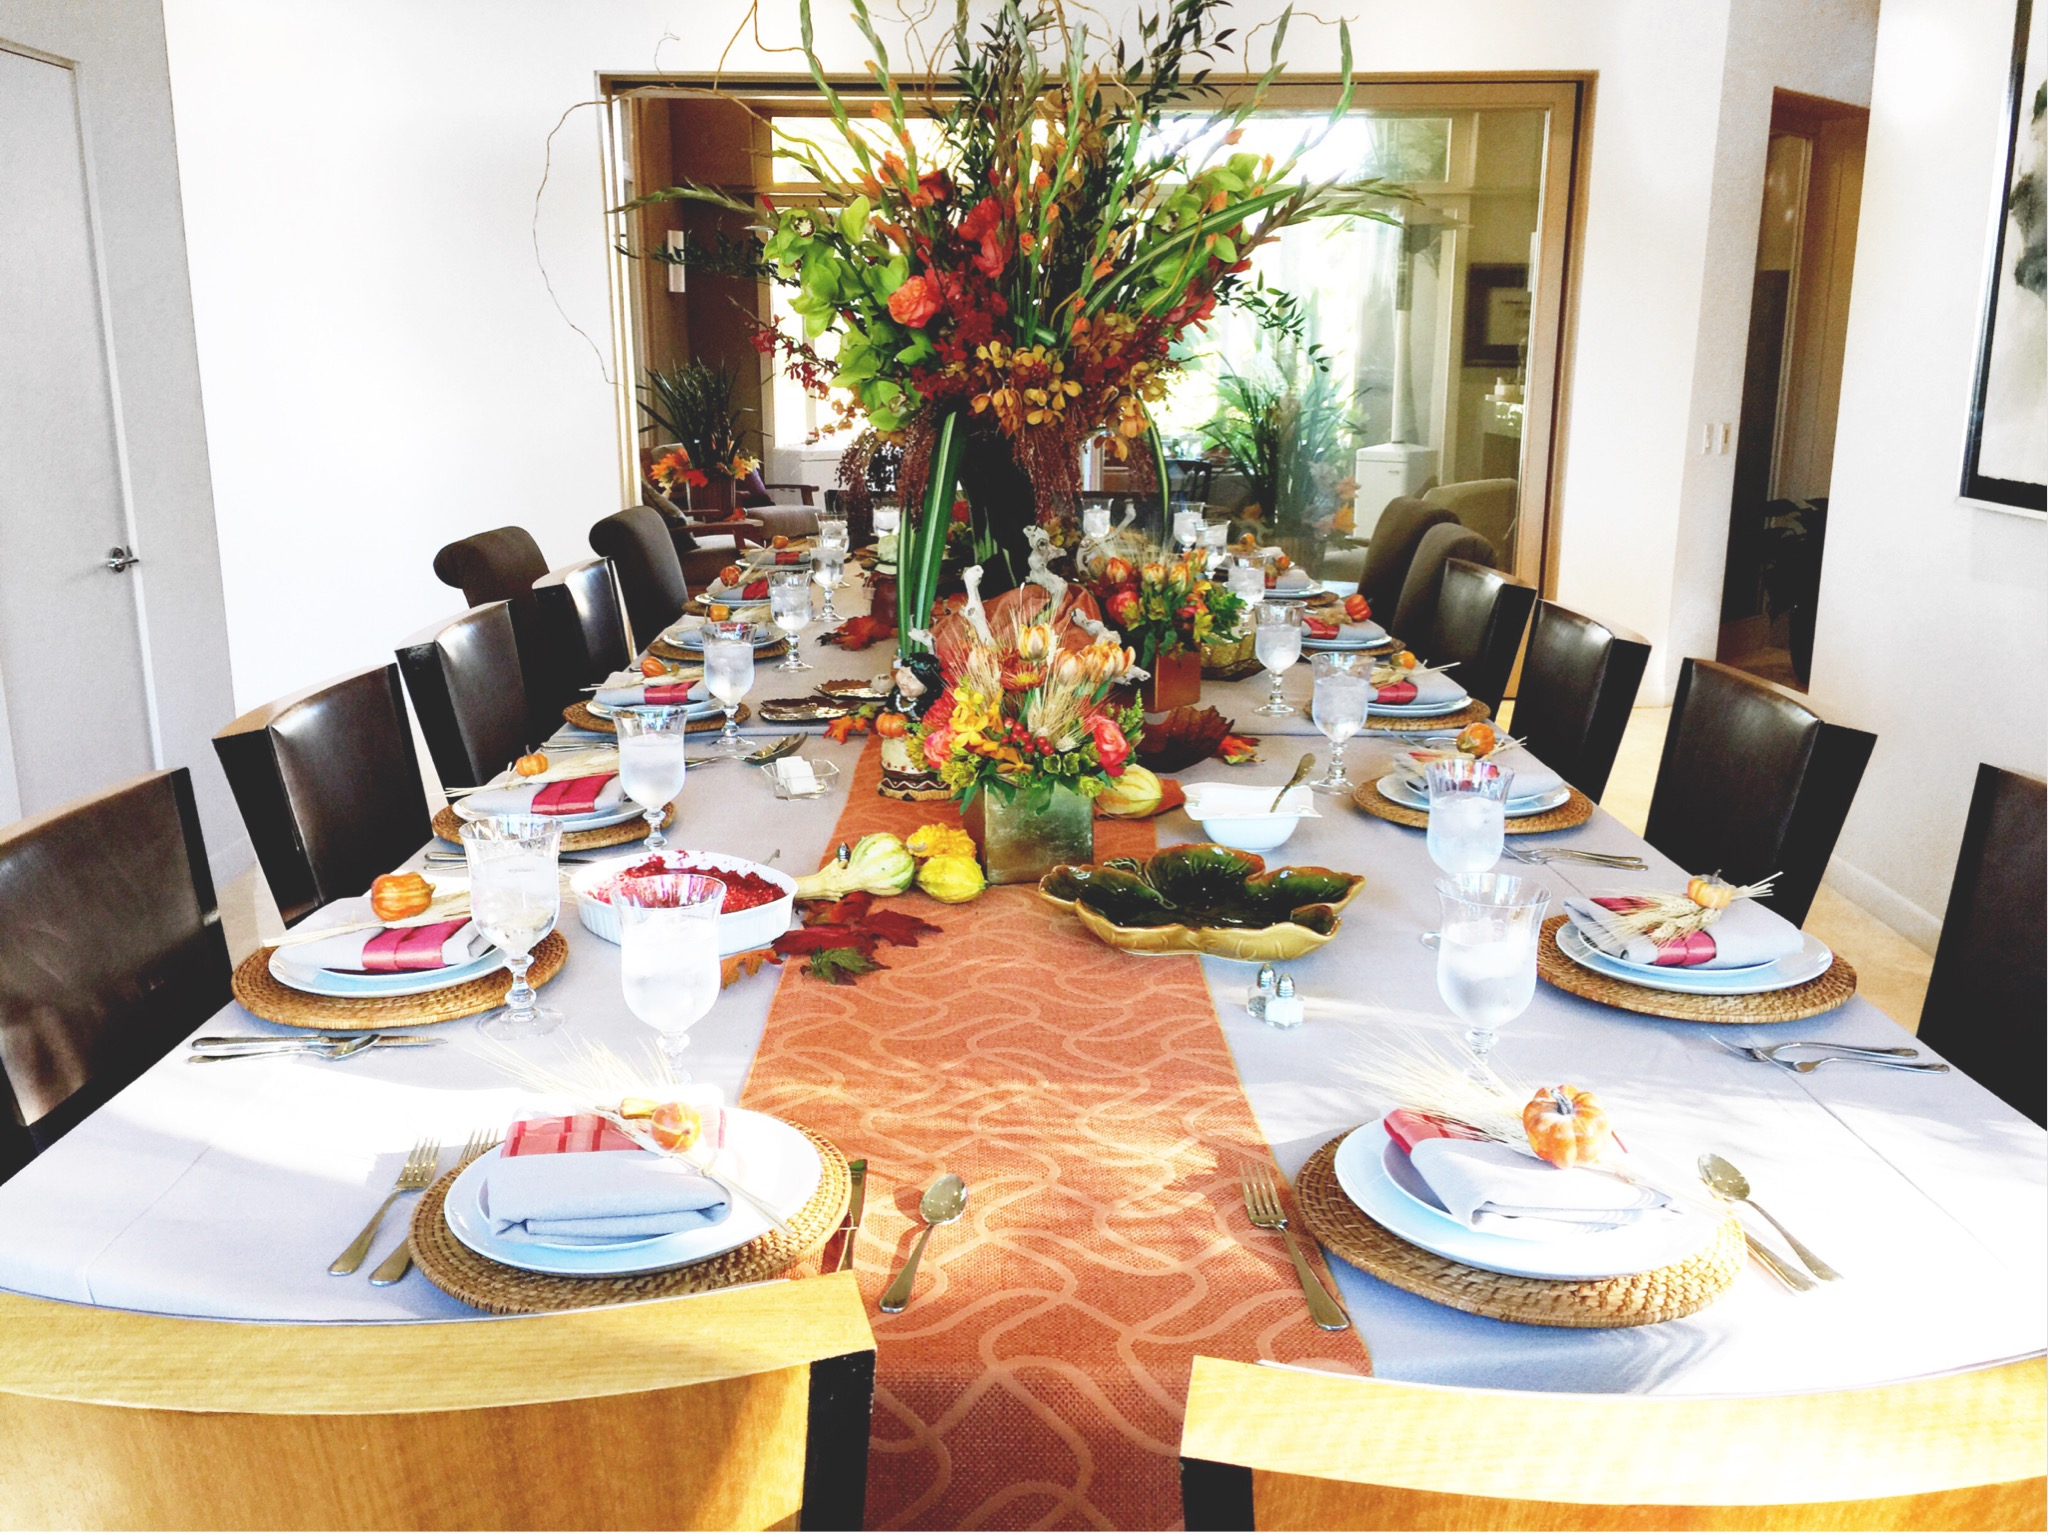 Thanksgiving festivities: gorgeous table decor